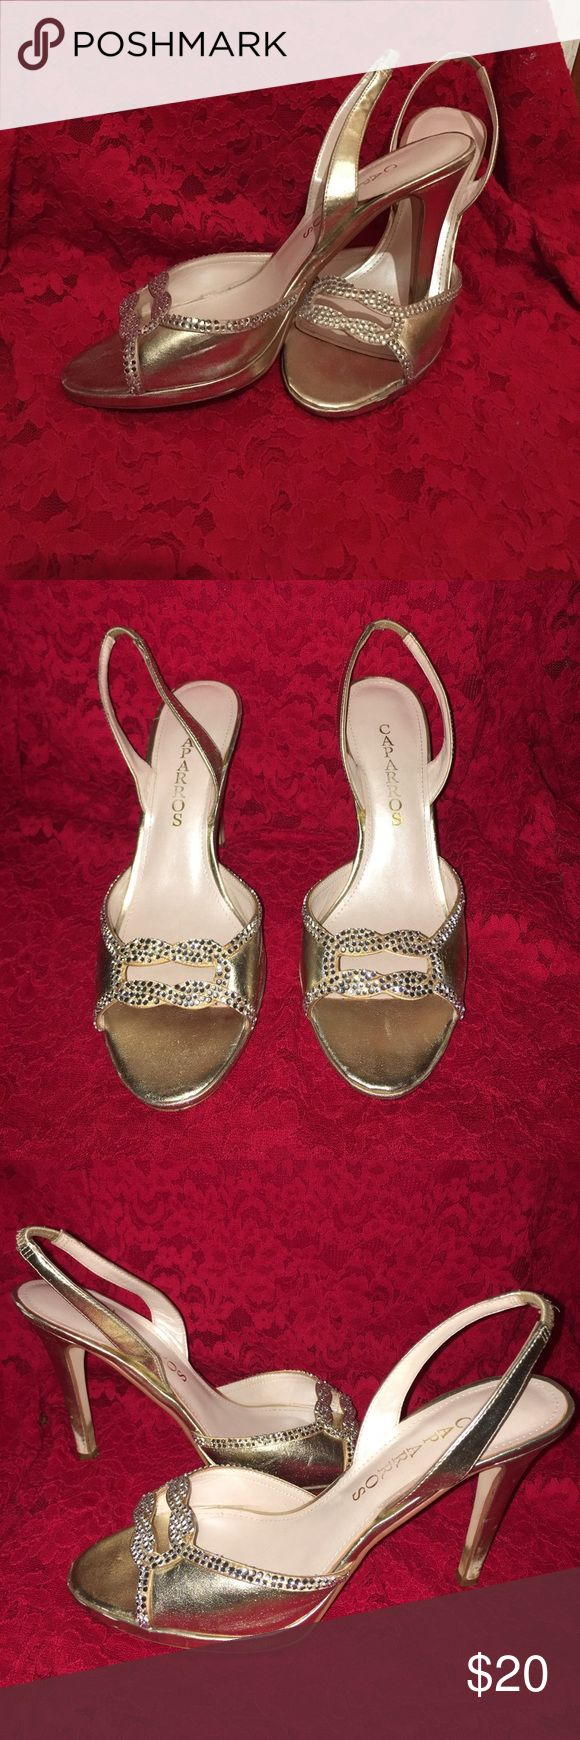 Caparros Gold and Rhinestoned Heels The heels are great for prom, a sweet sixteen, homecoming, a dance, or another formal event! These shoes have only been warn a handful of times but still in a great condition. On the  back of the heels the gold has been slightly warn away and there a couple scuffs as pictured. The band around the heel is still tight and intact. Caparros Shoes Heels